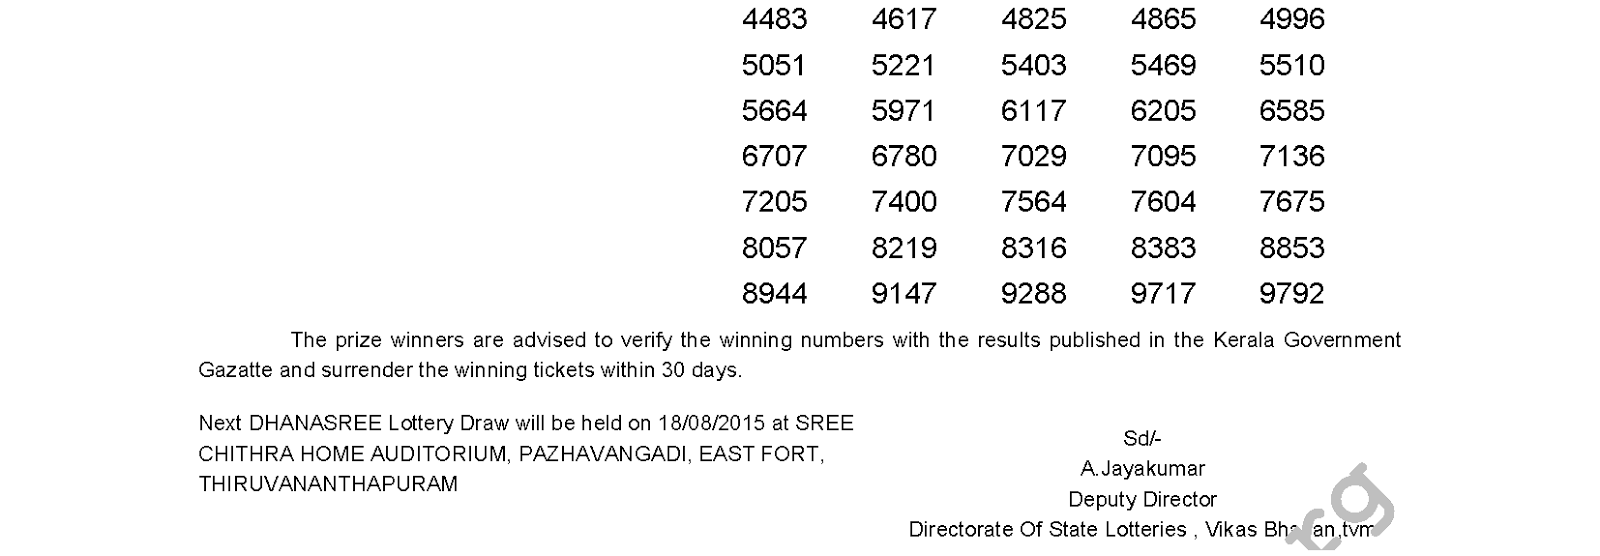 DHANASREE Lottery DS 198 Result 11-8-2015